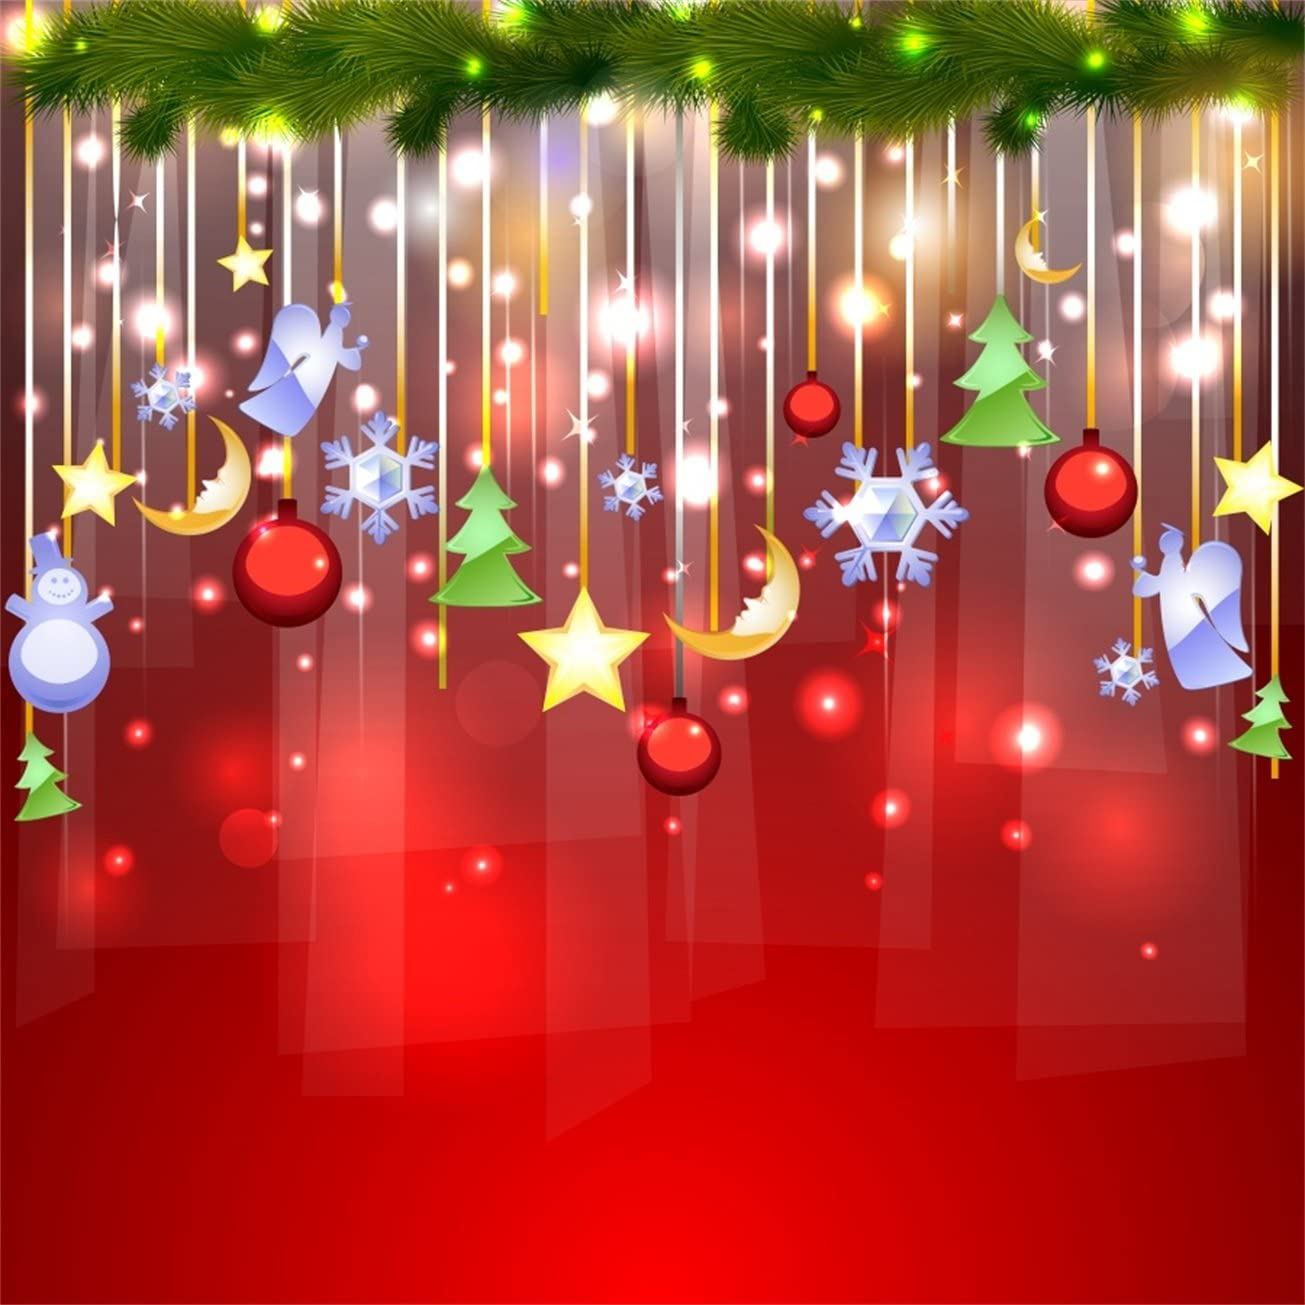 Happy New Year 2020 Background 8x6.5ft Christmas Photography Backdrop Golden White Balloons Glitter Bokehs Dots Stars Holiday Carnival Party New Year Eve Xmas Festive Portrait Shoot Decor